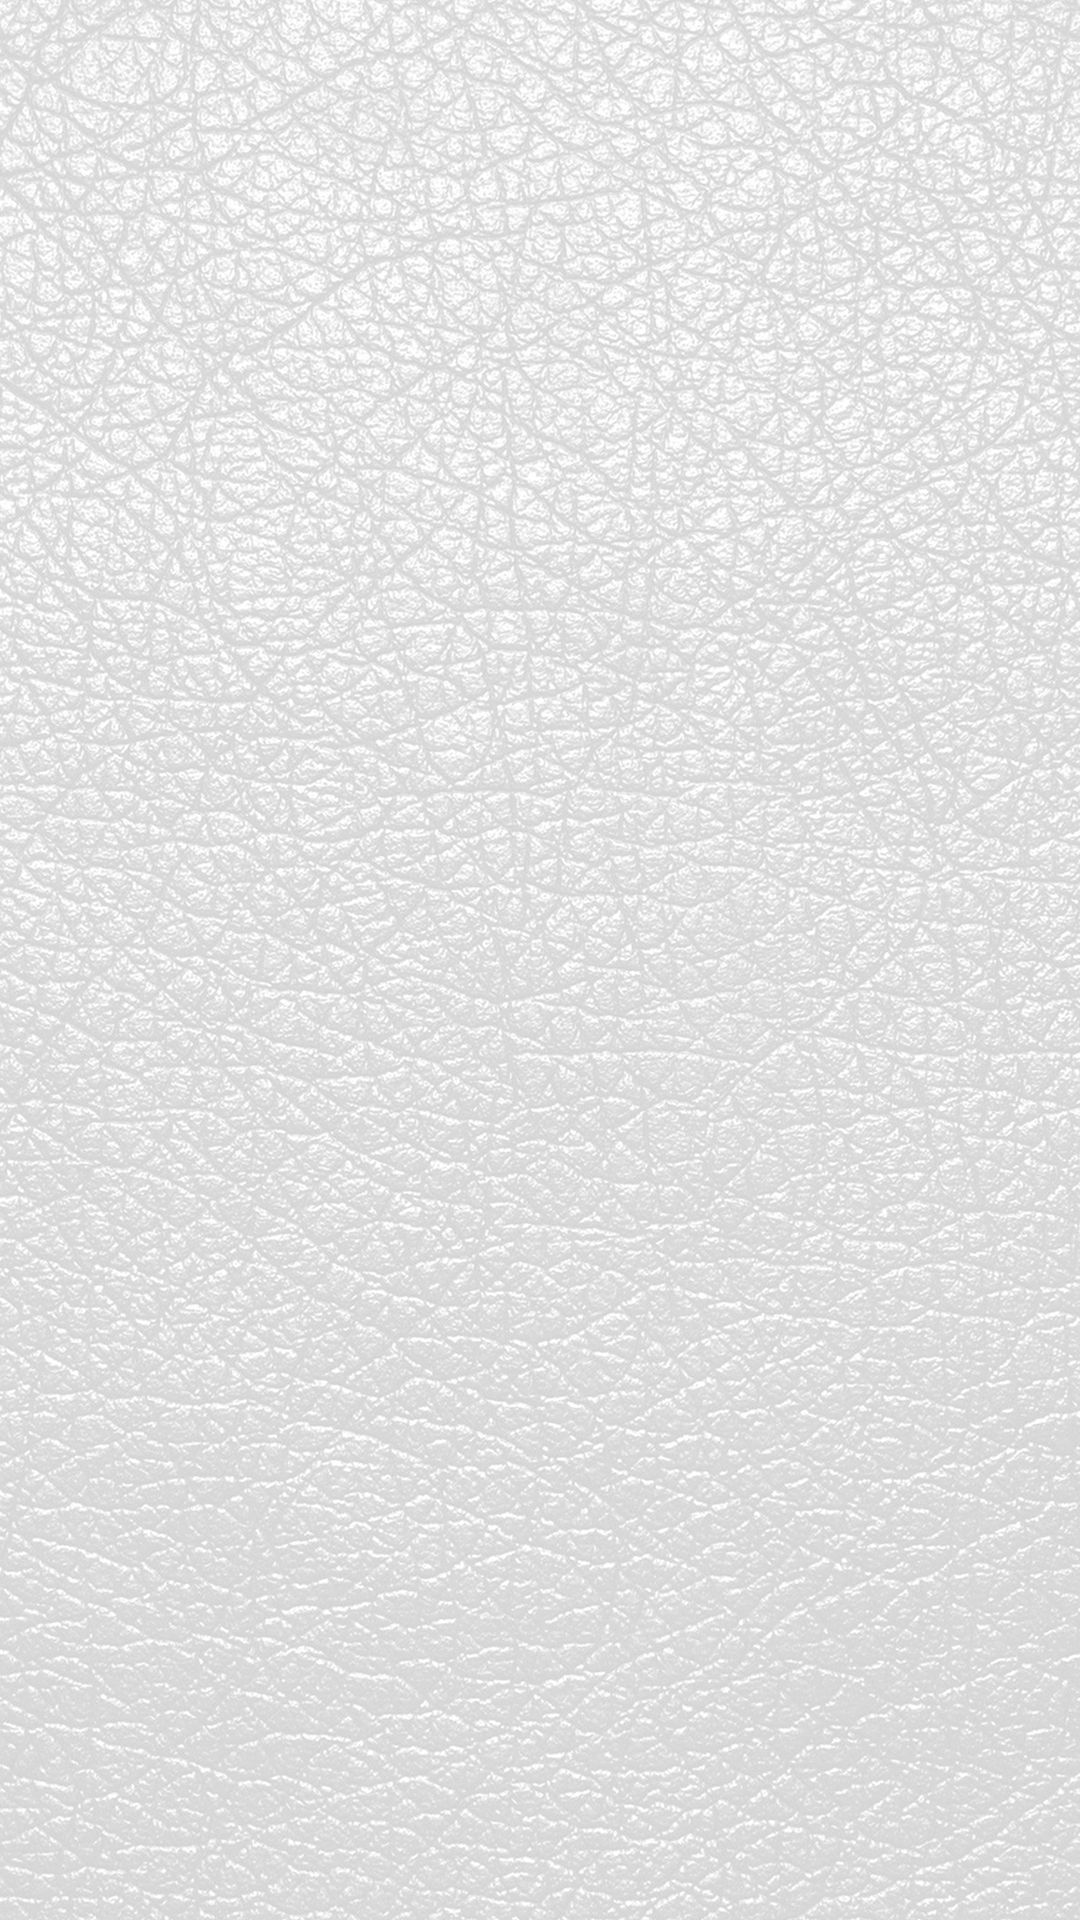 texture skin white leather pattern iphone 8 wallpaper